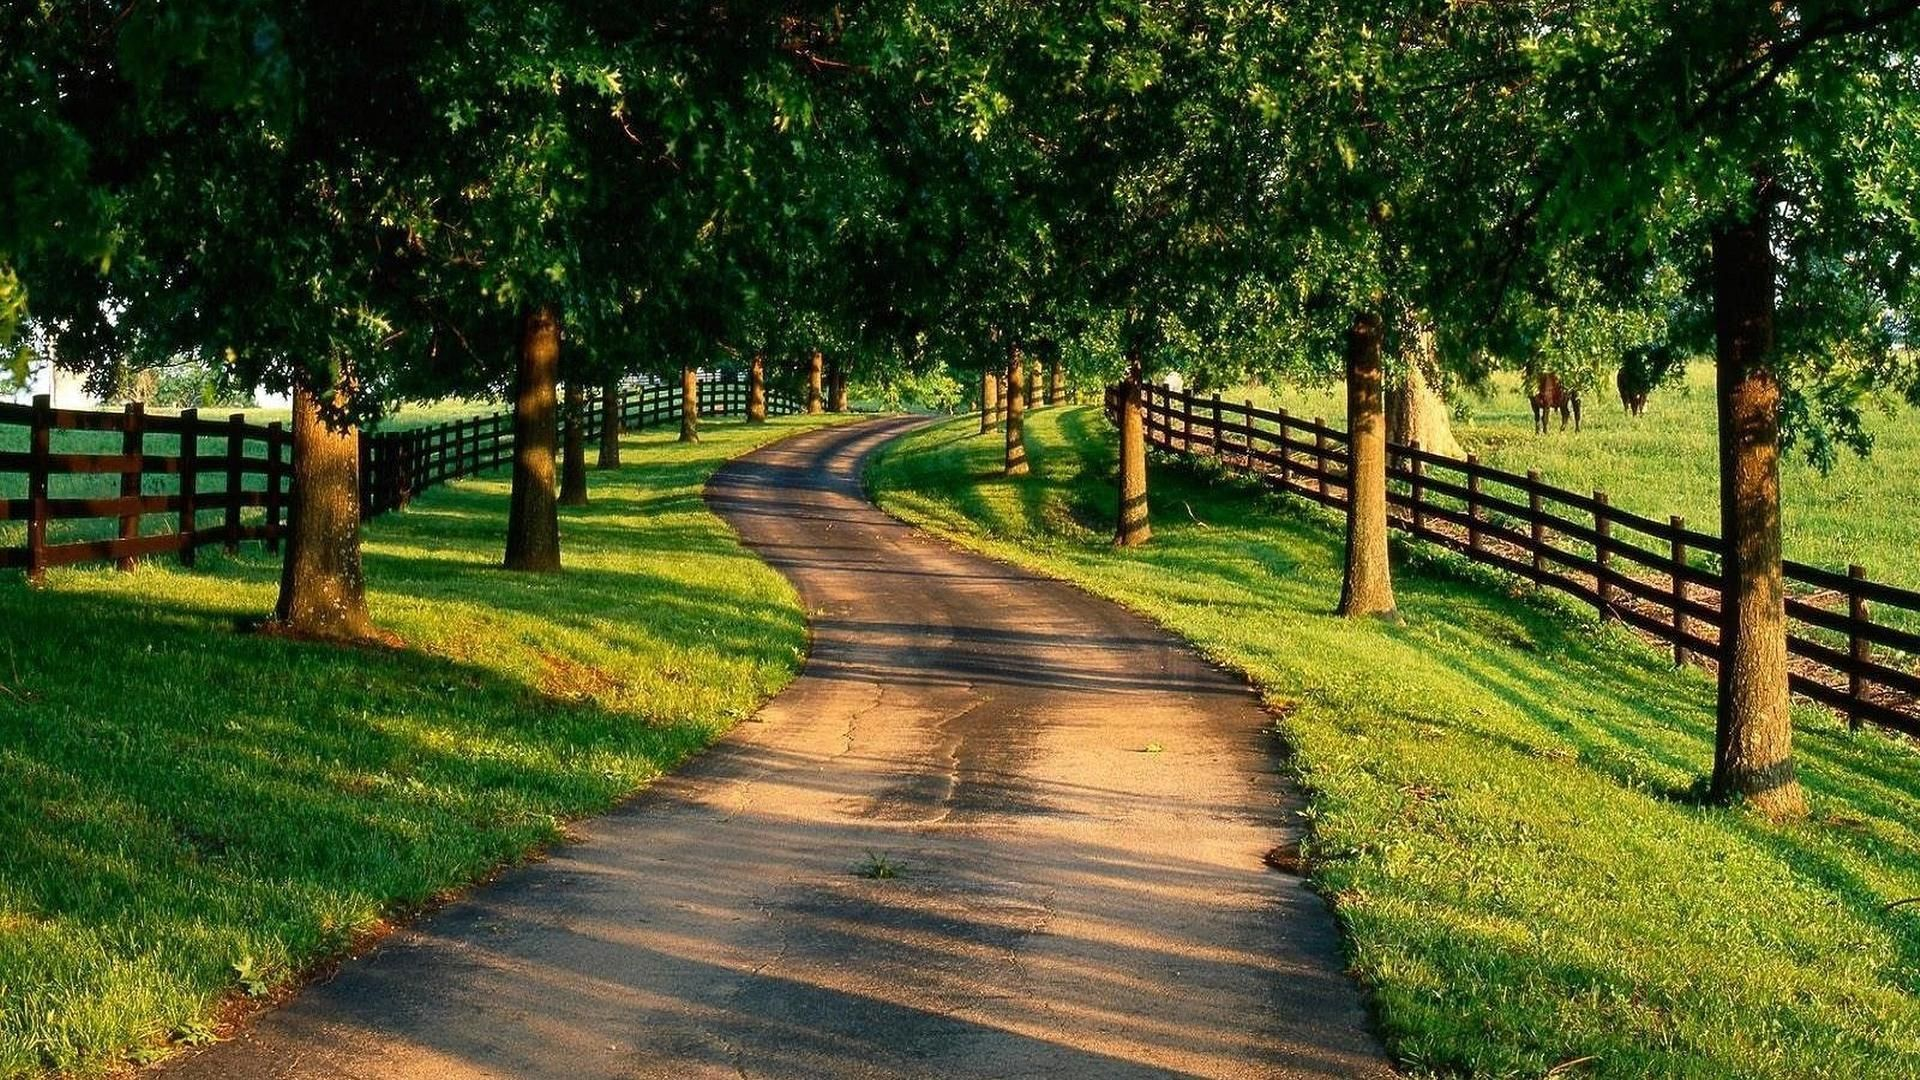 Must see Wallpaper Horse Country - 417f93fb25e8160d28d080a5a621fd9f  You Should Have_939781.jpg